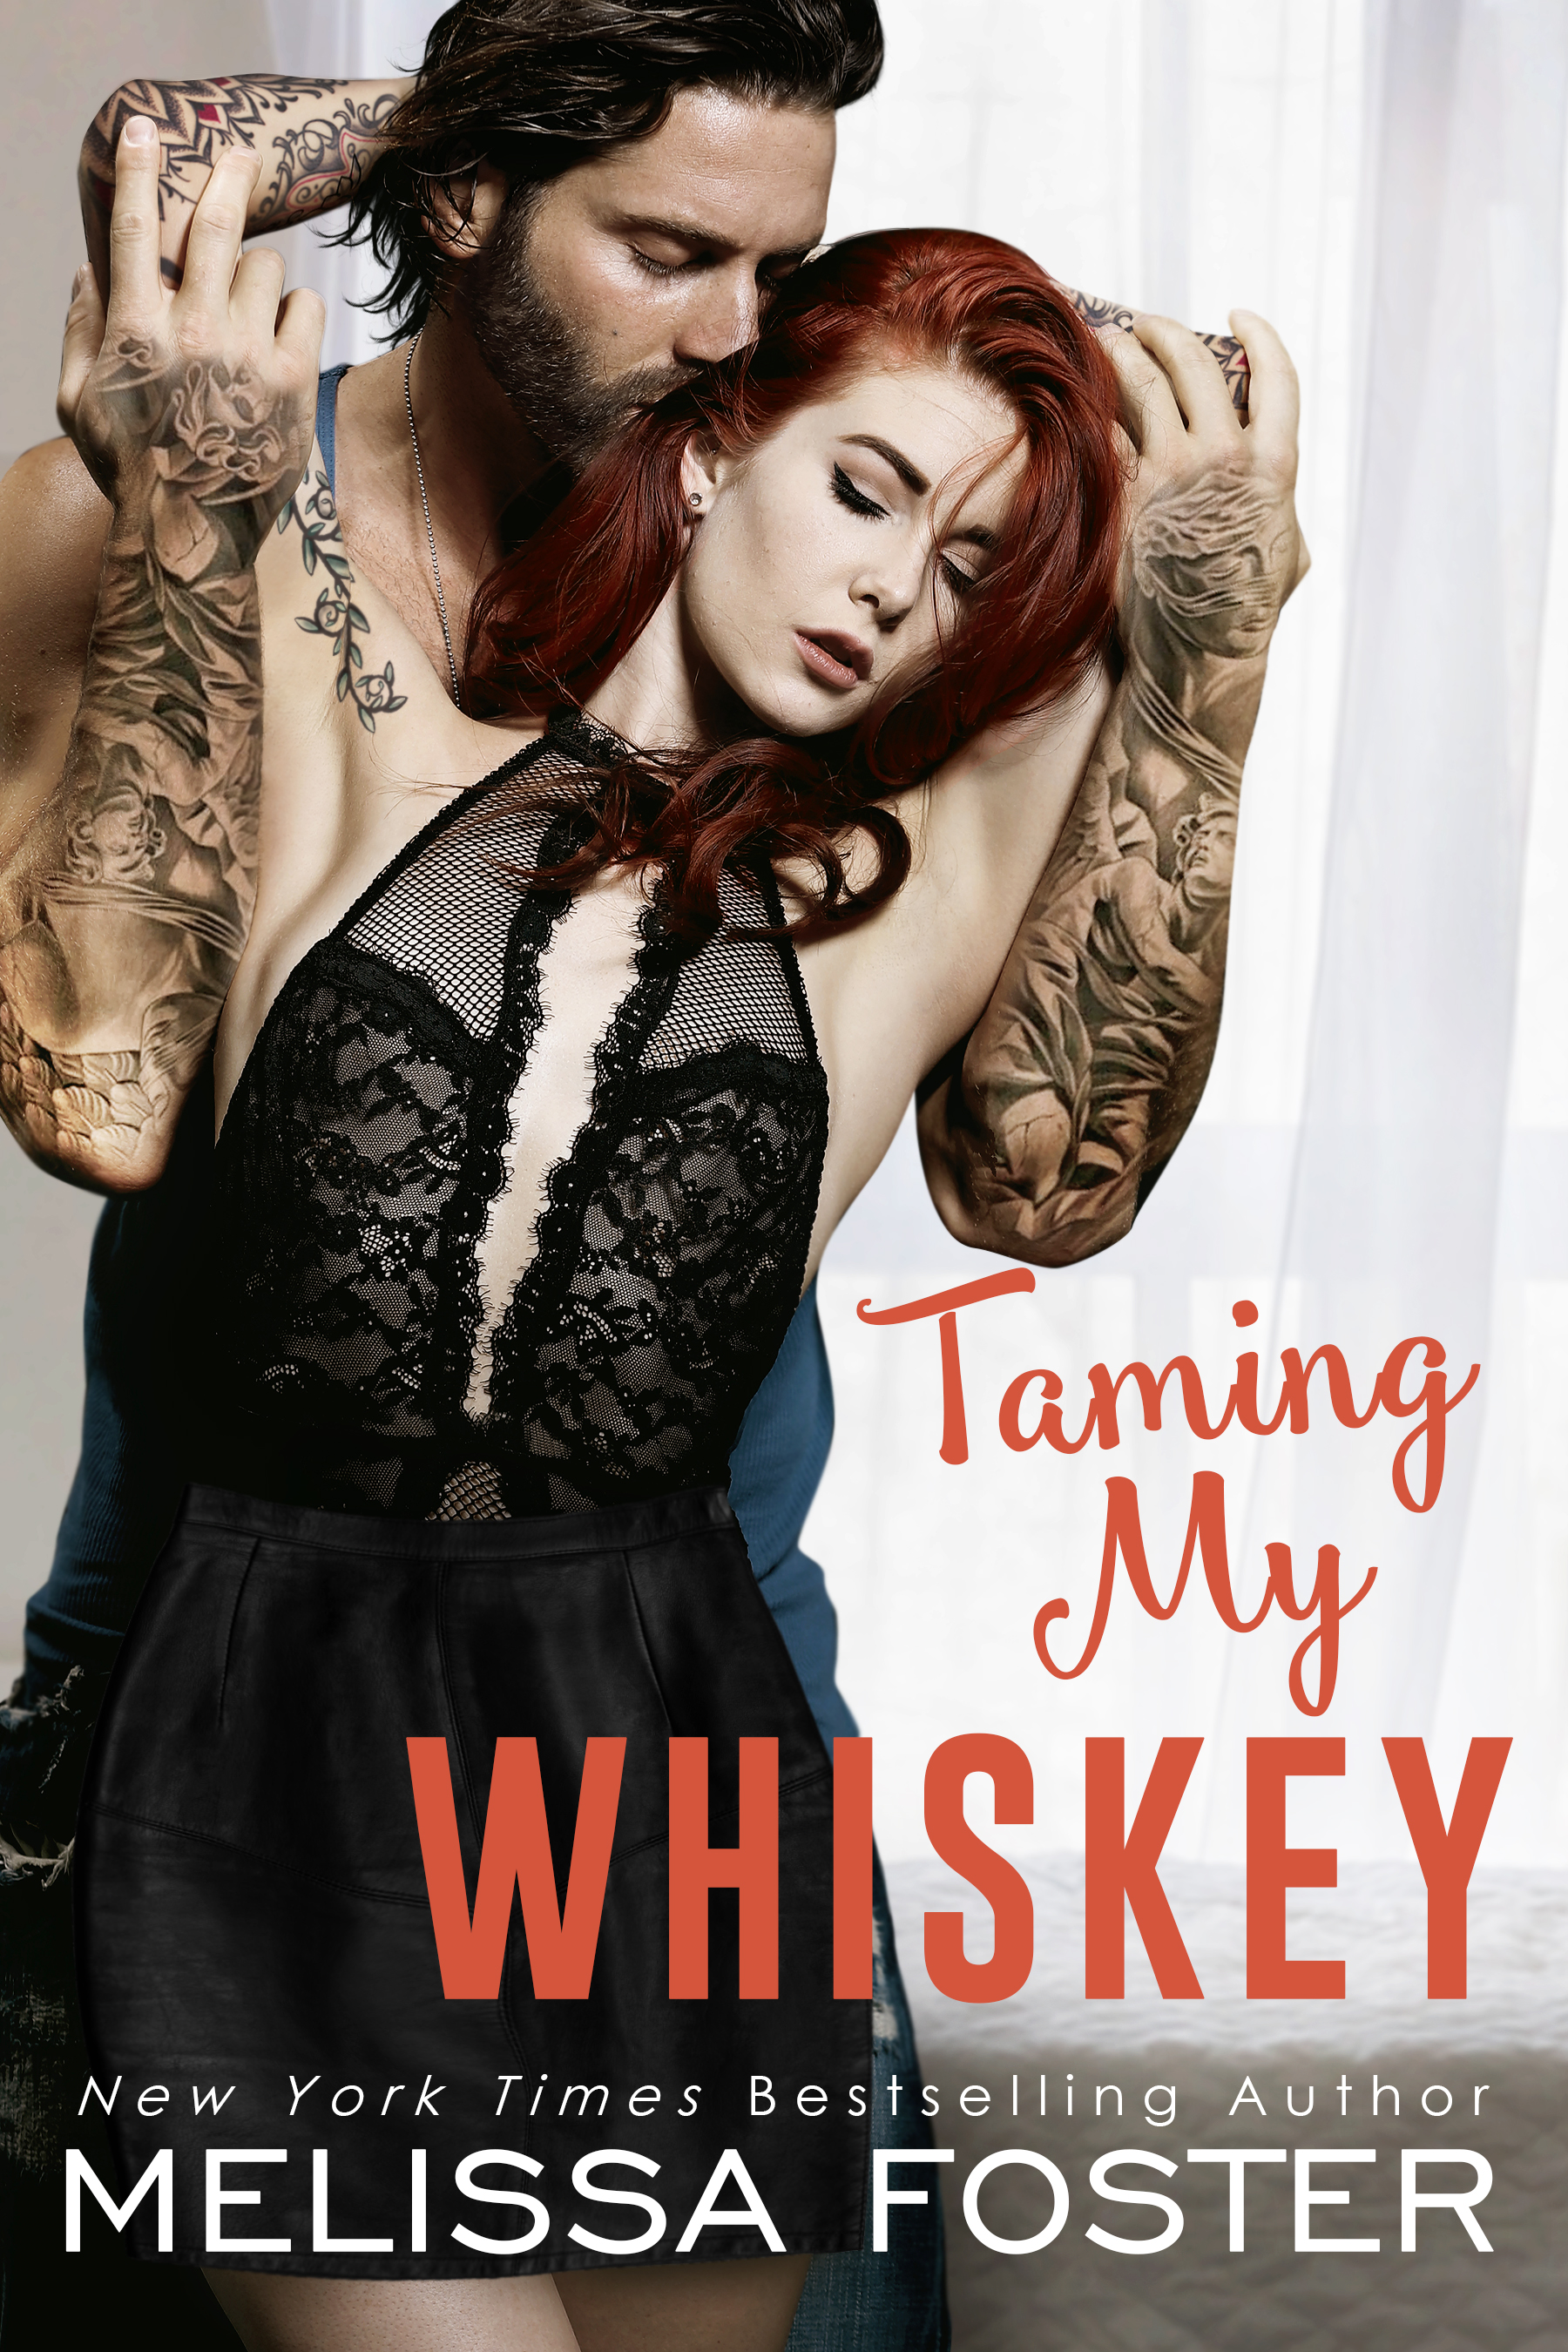 Taming My Whiskey Melissa Foster